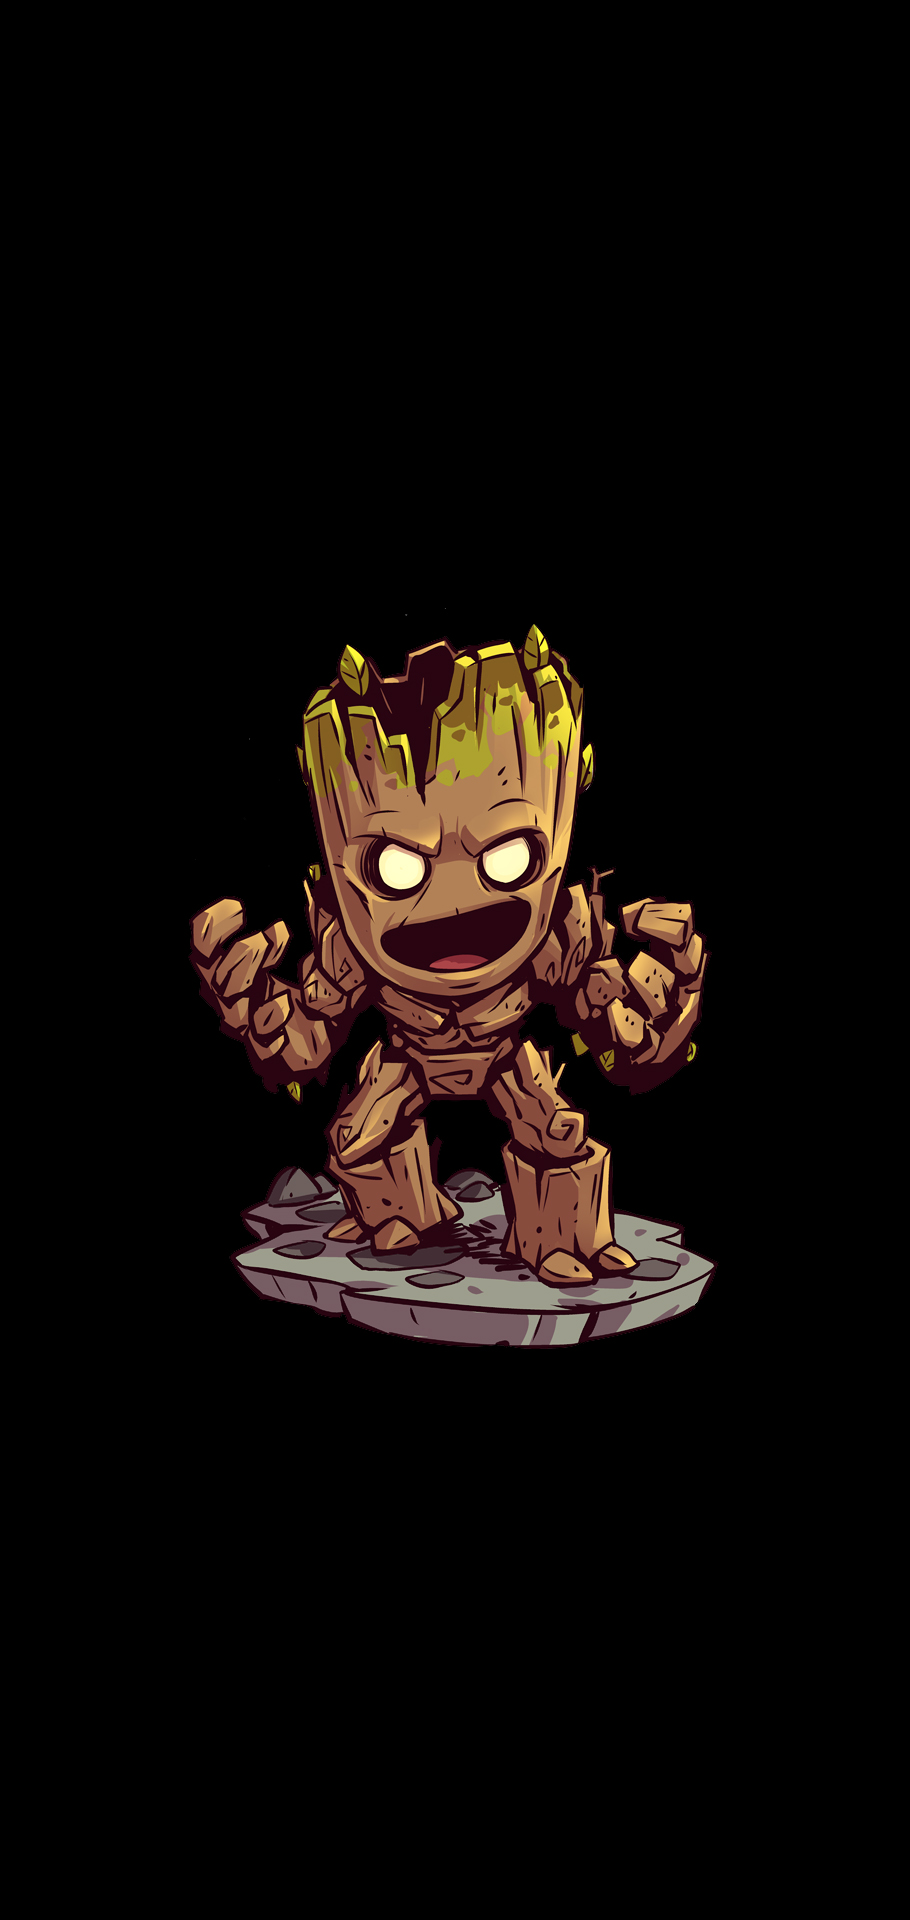 groot from guardian of the galaxy